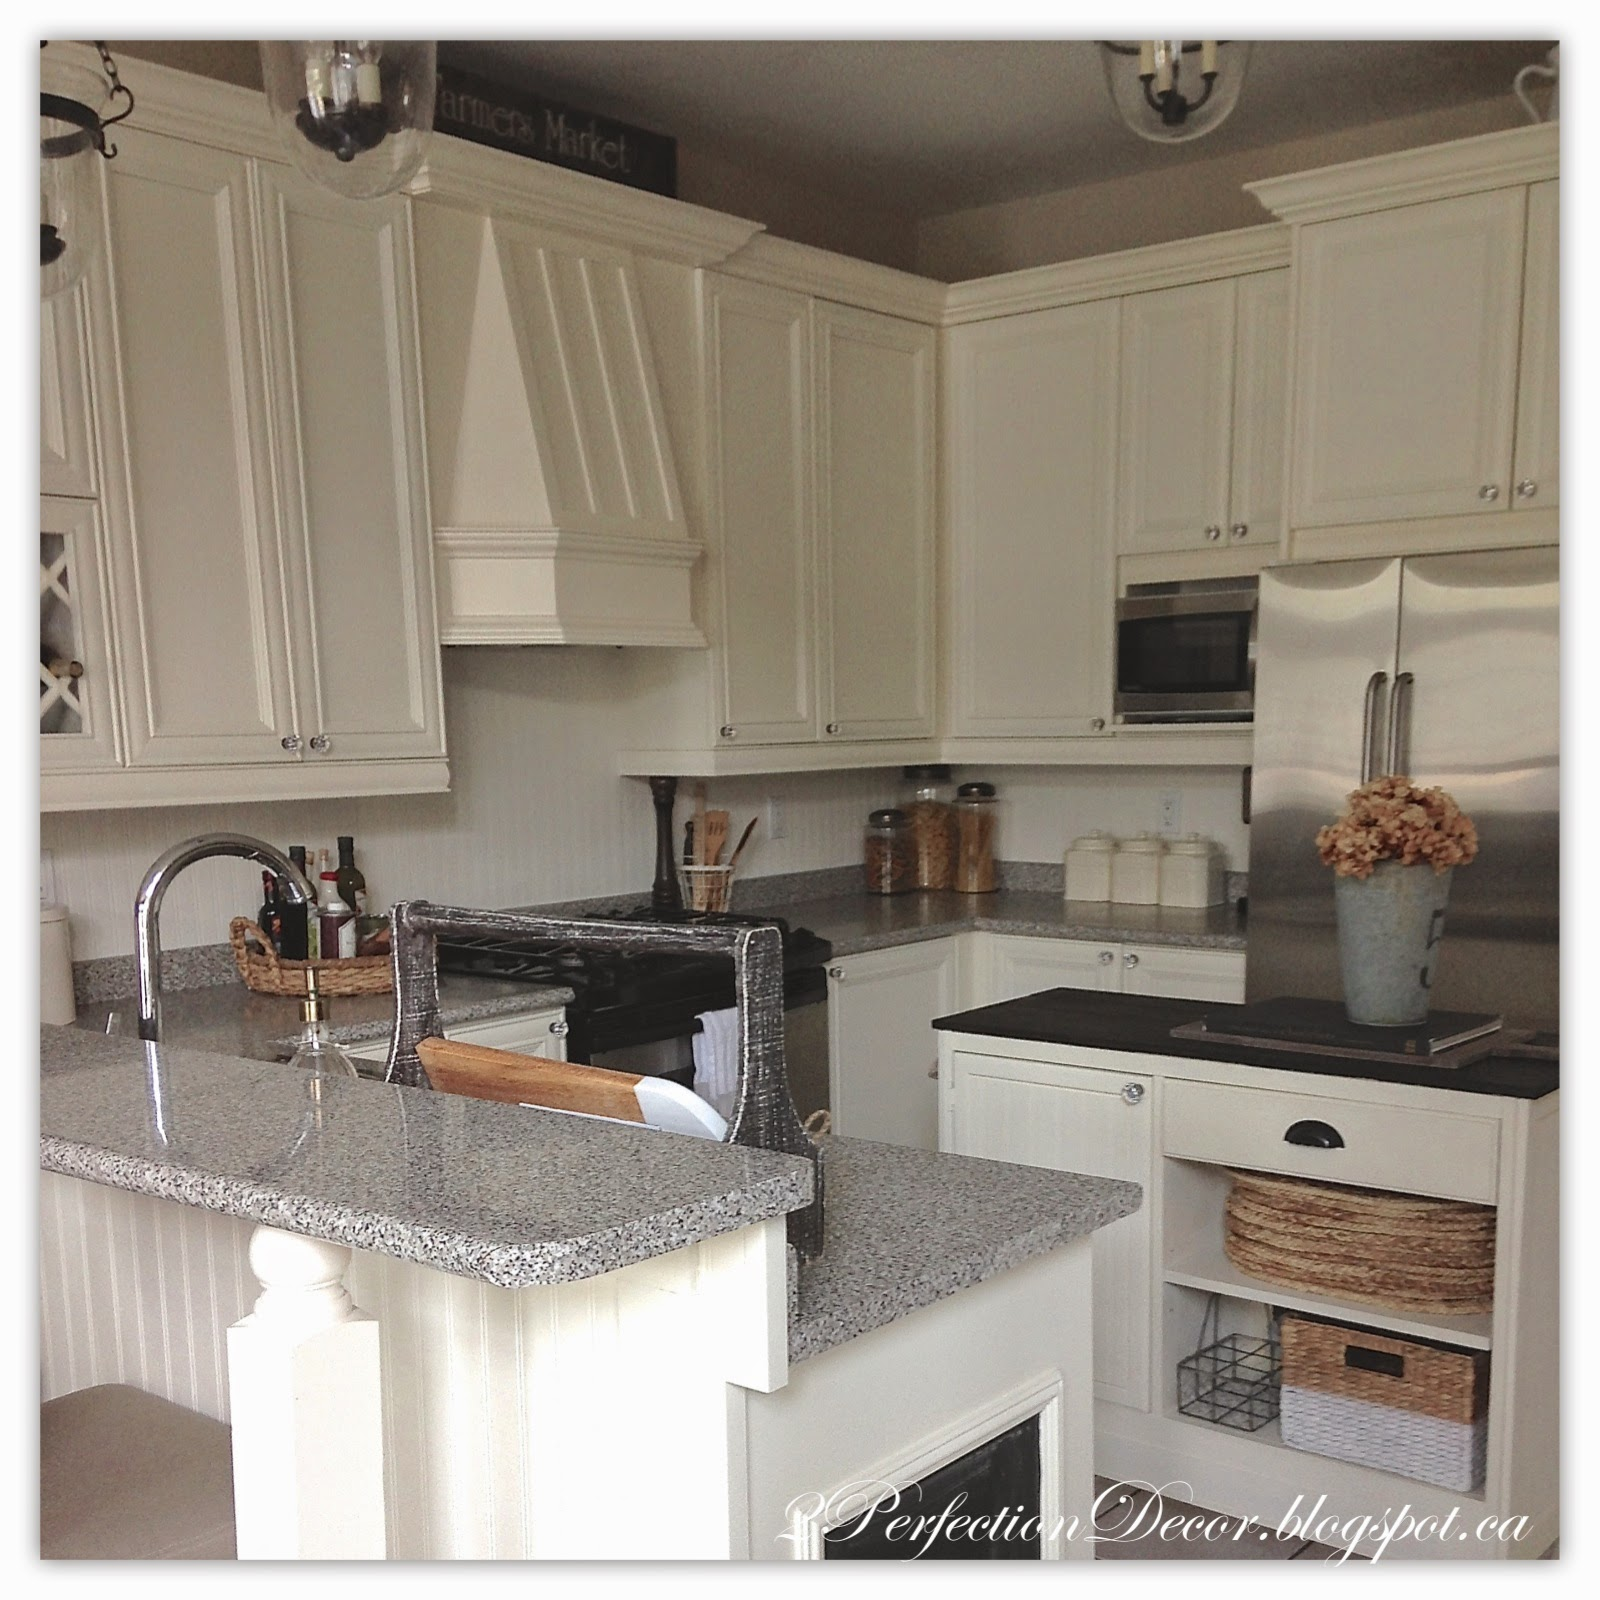 French Provincial Kitchen: 2Perfection Decor: Painted French Country Kitchen Reveal